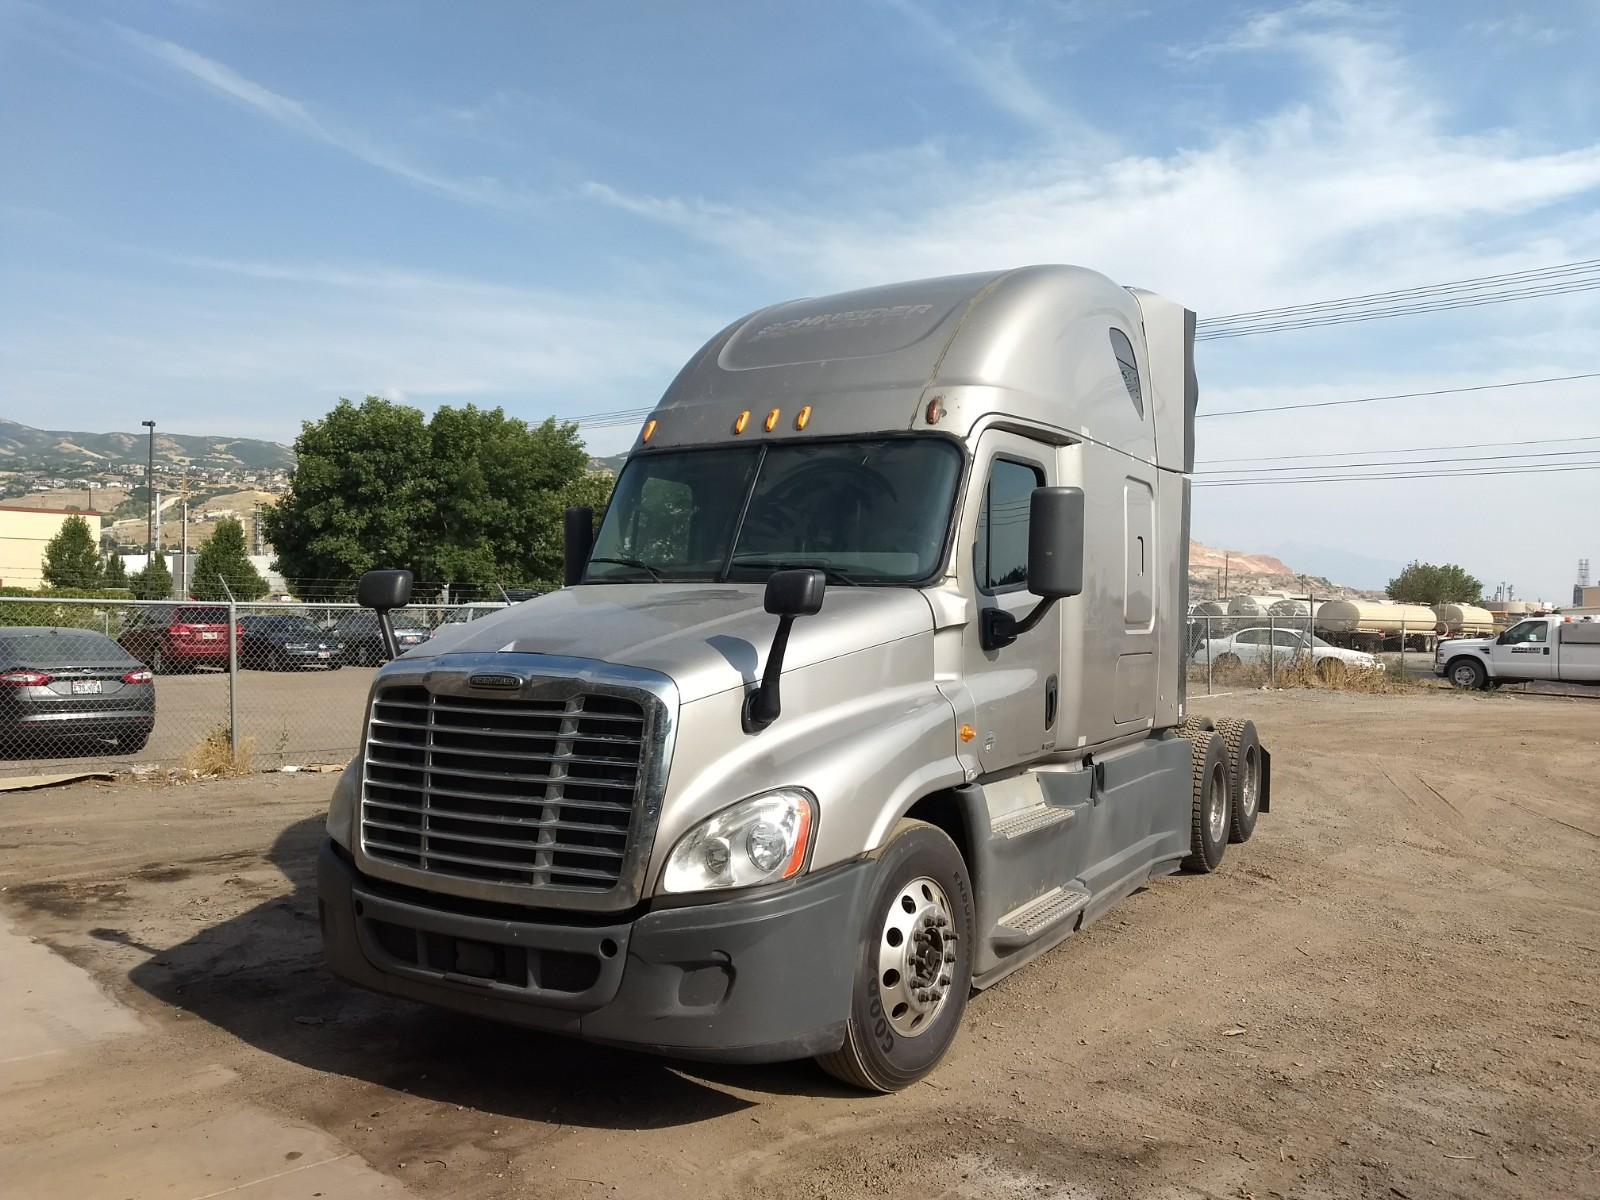 USED 2014 FREIGHTLINER CASCADIA SLEEPER TRUCK #129248